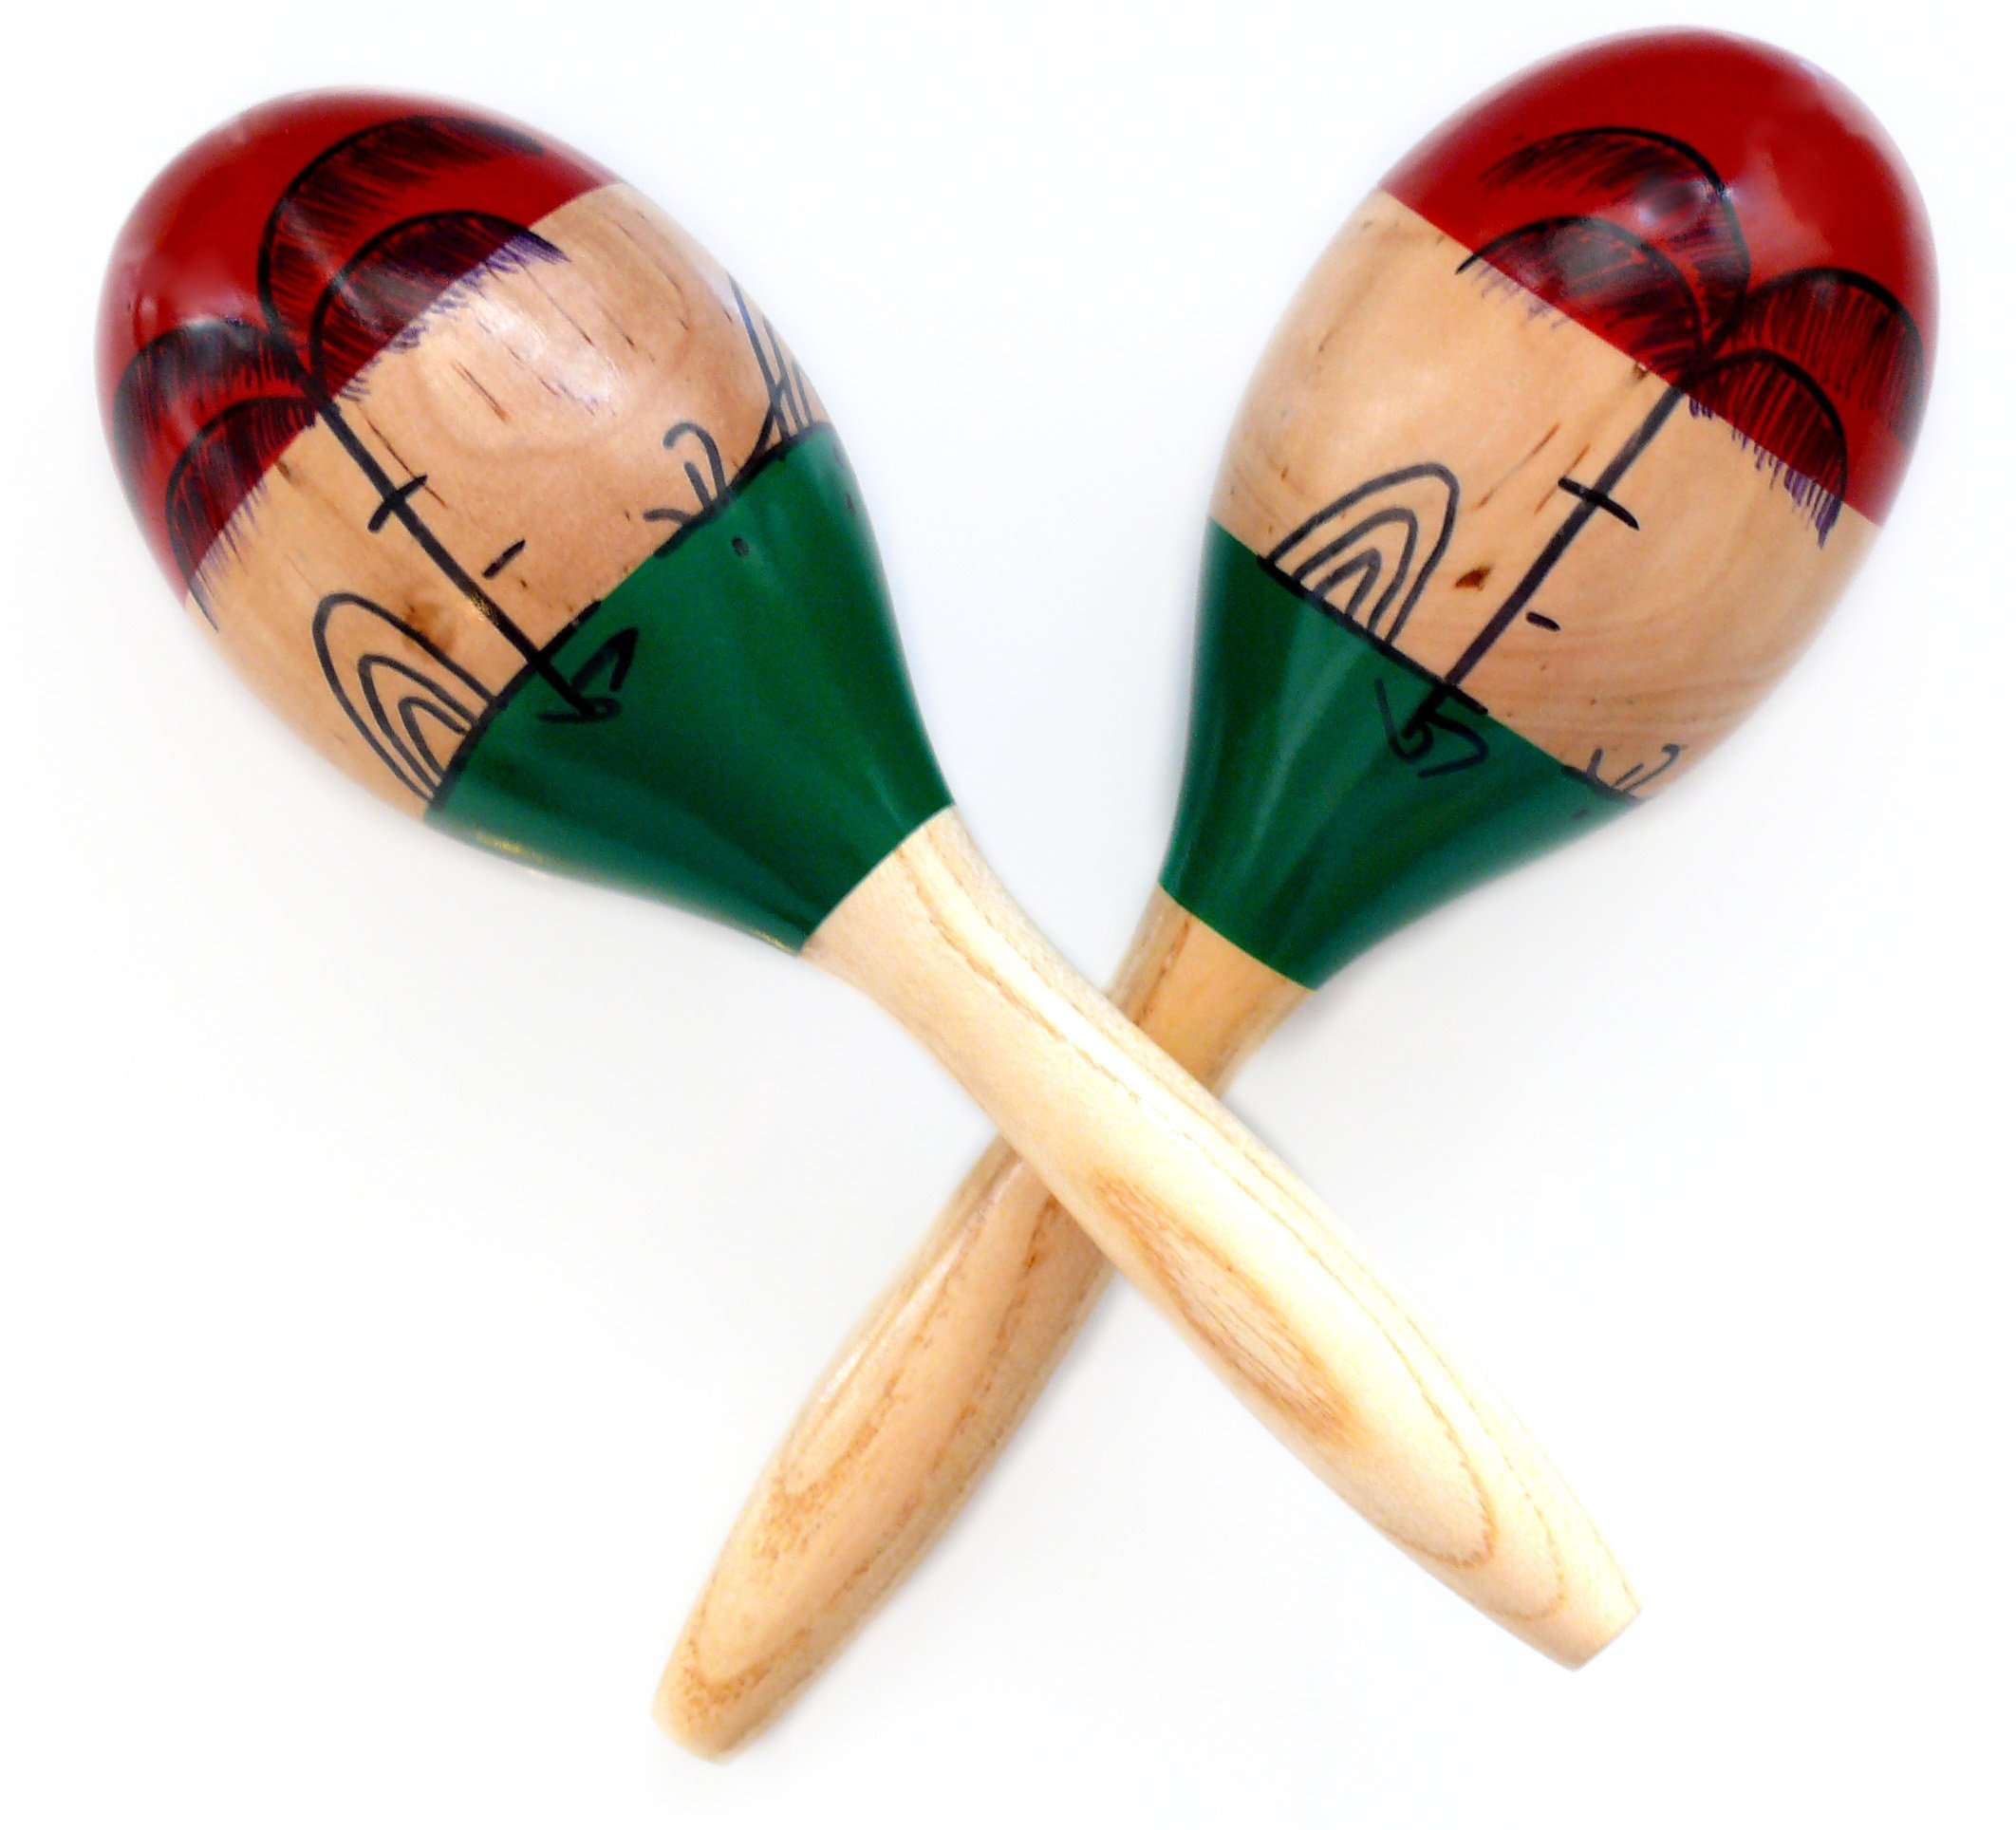 MARACAS & LARGE REAL WOOD RUMBA SHAKERS Set of 2 - Latin Hand Percussion With Full, Bright Vibrant Sound Quality and Great Musical Instrument Stimulating Salsa Rhythm - Rattle With Party Fun by Happy Maracas